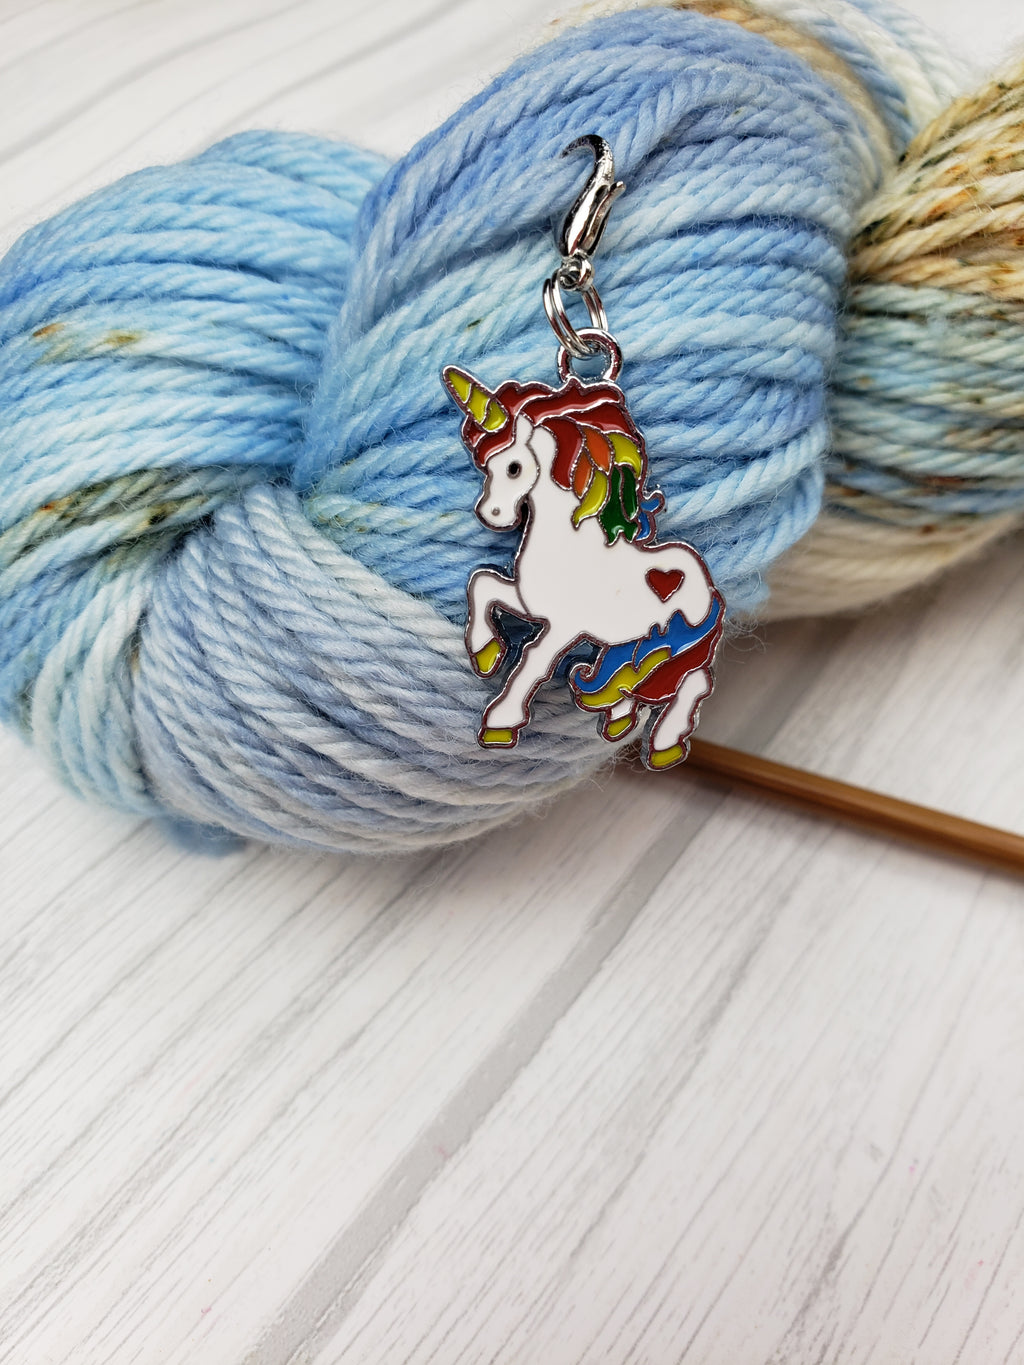 Unicorn Charms, Set of 3 - Spindle warps yarns